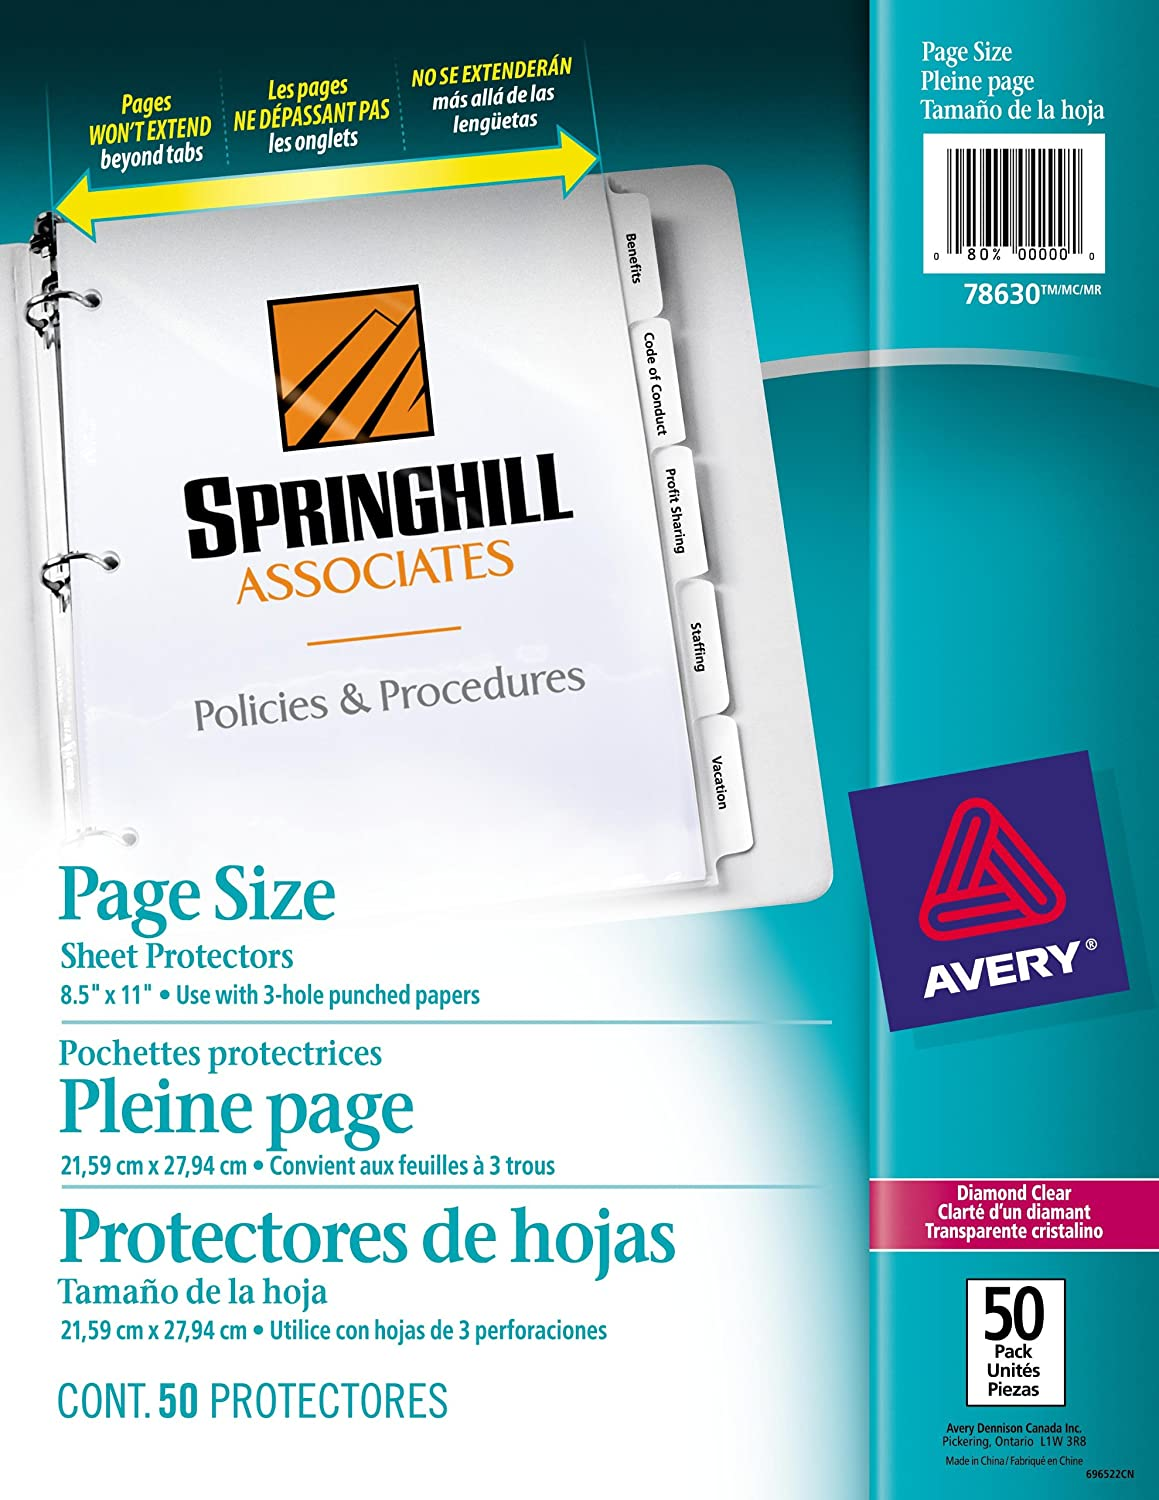 Avery Page Size Sheet Protectors, Diamond Clear, Fits Letter Size -8.5 x 11, 50 Sheets (78630) Avery Dennison CA